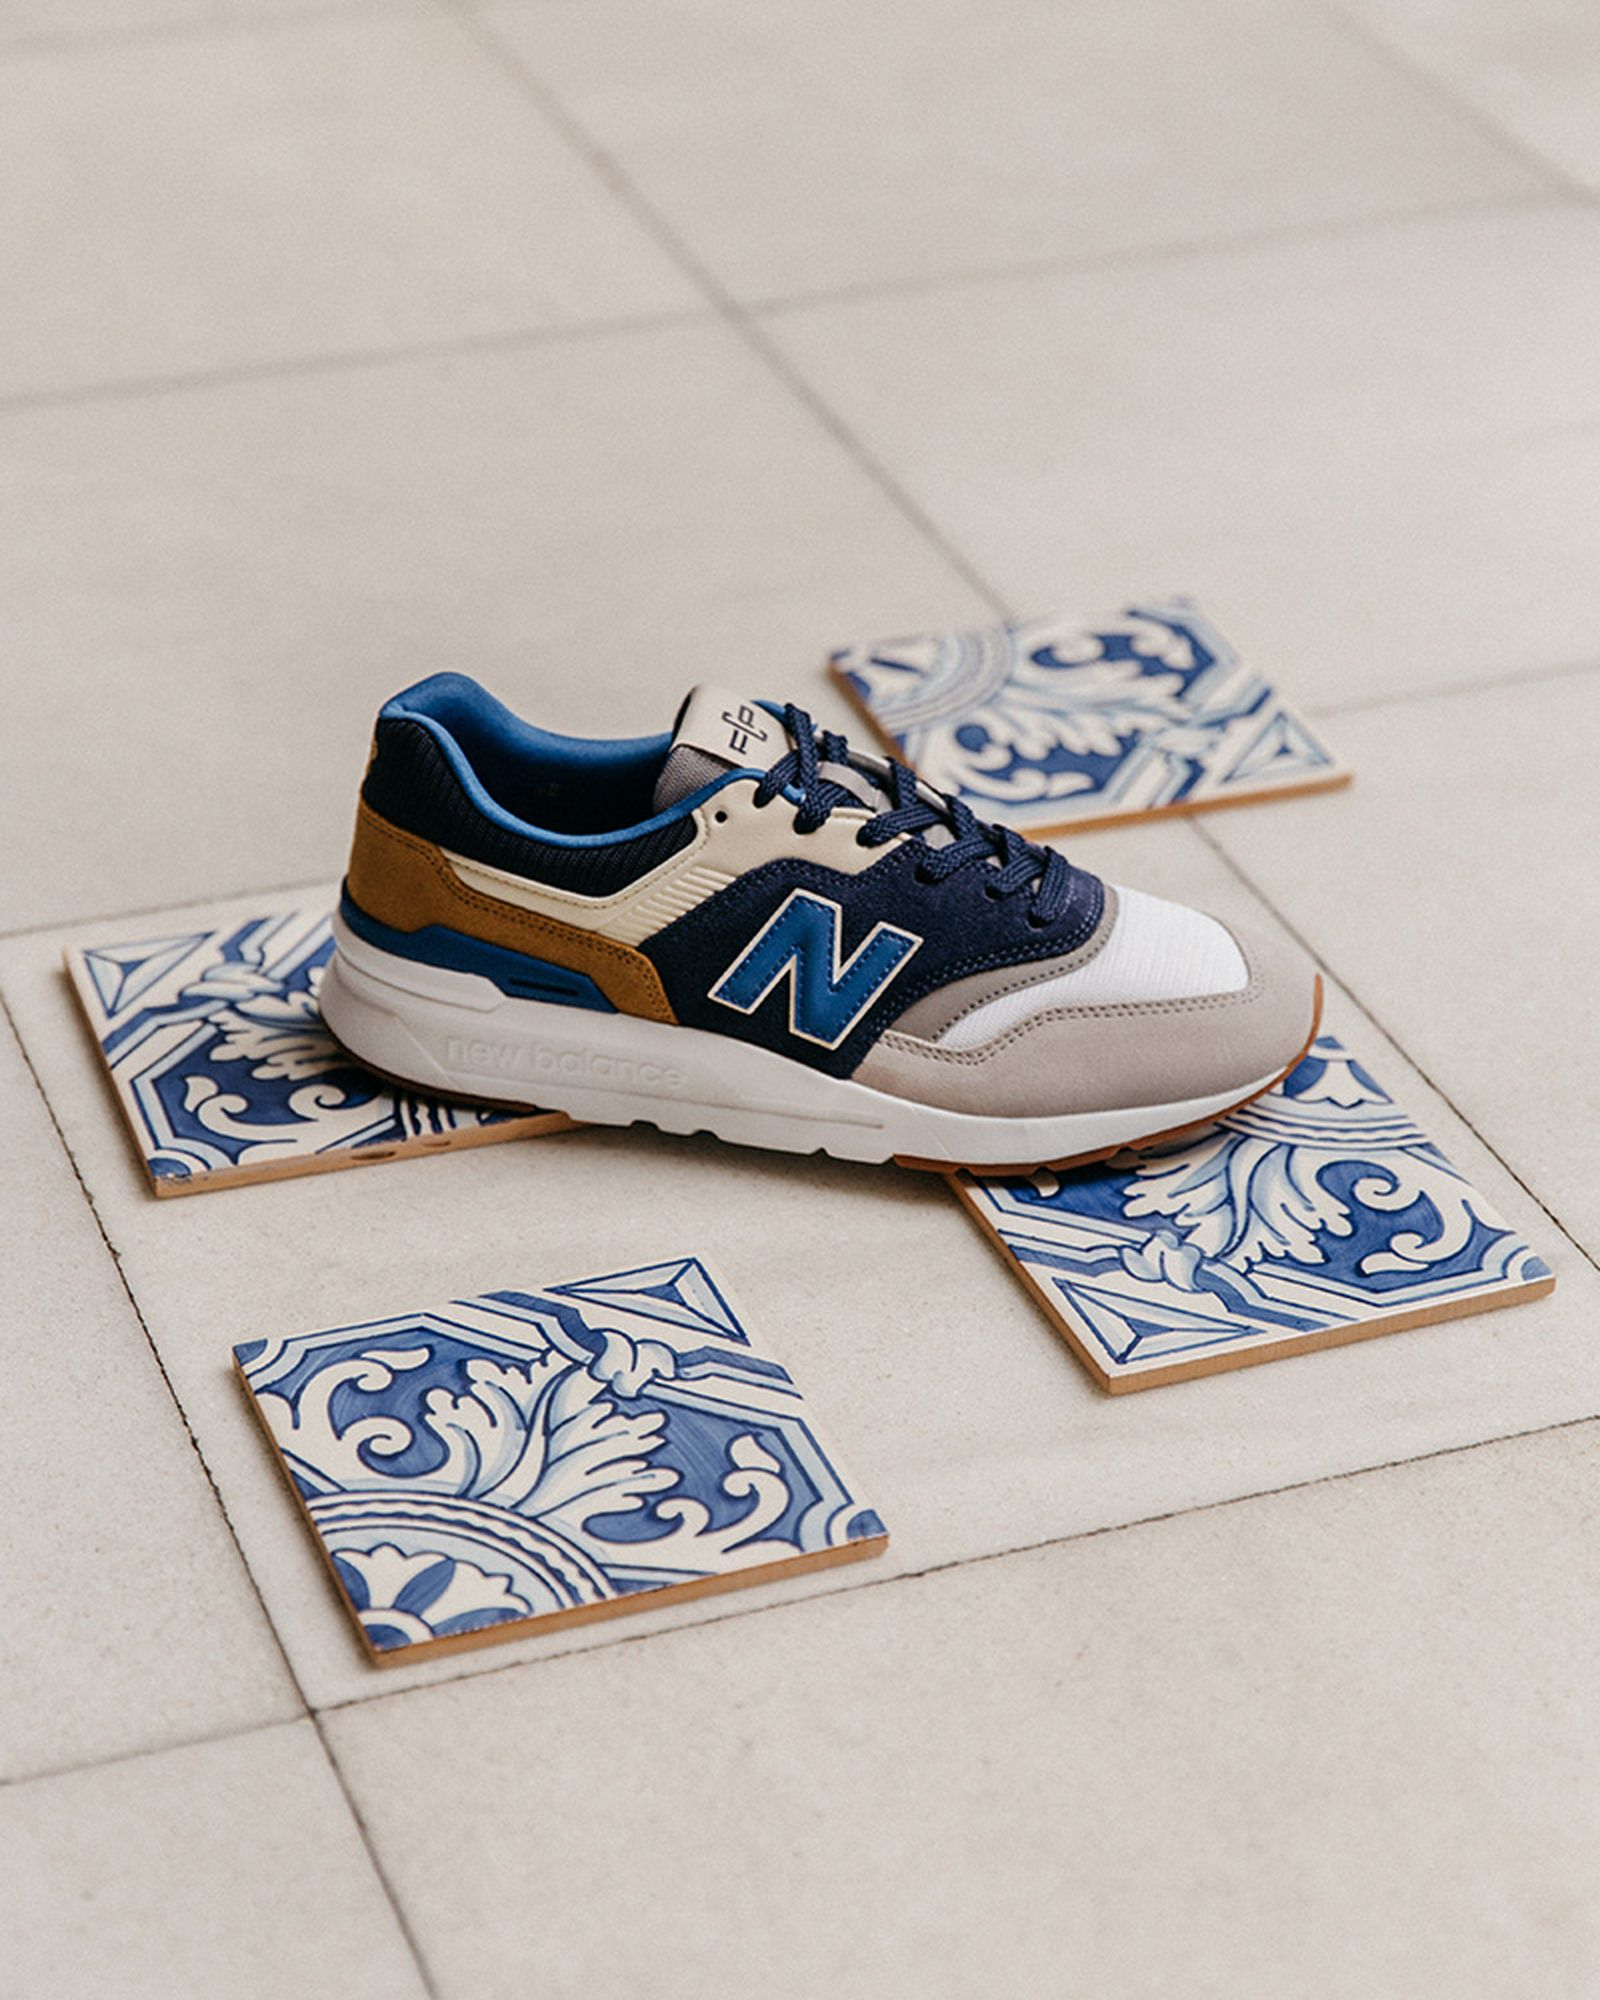 FC Porto x New Balance 997H: Official Images & Release Info